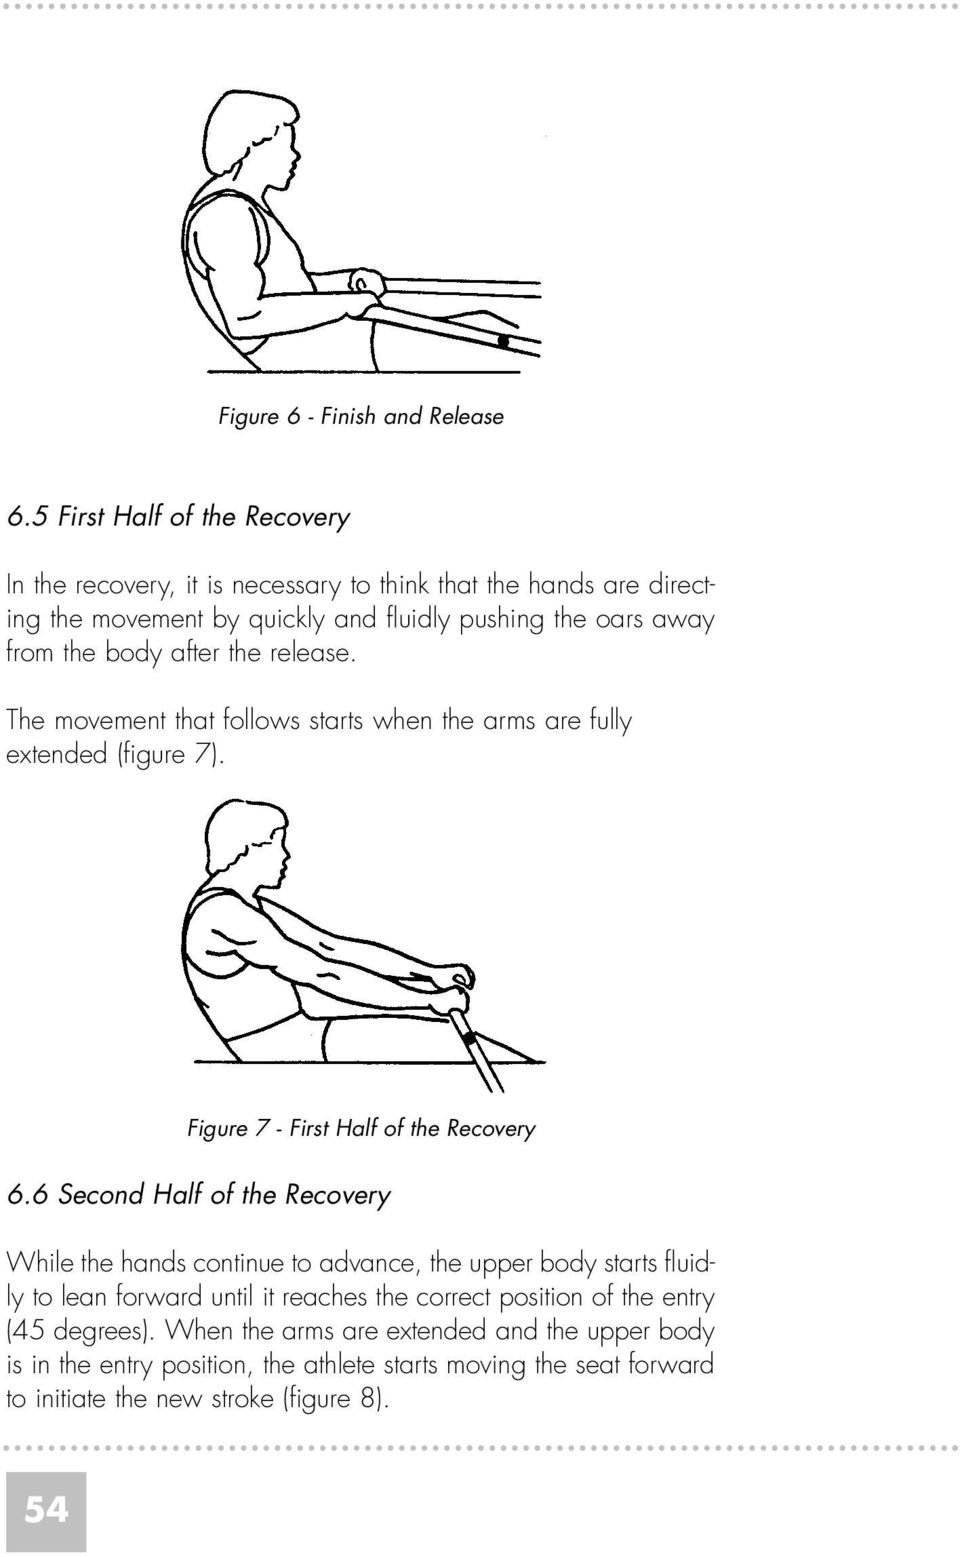 body after the release. The movement that follows starts when the arms are fully extended (figure 7). Figure 7 - First Half of the Recovery 6.